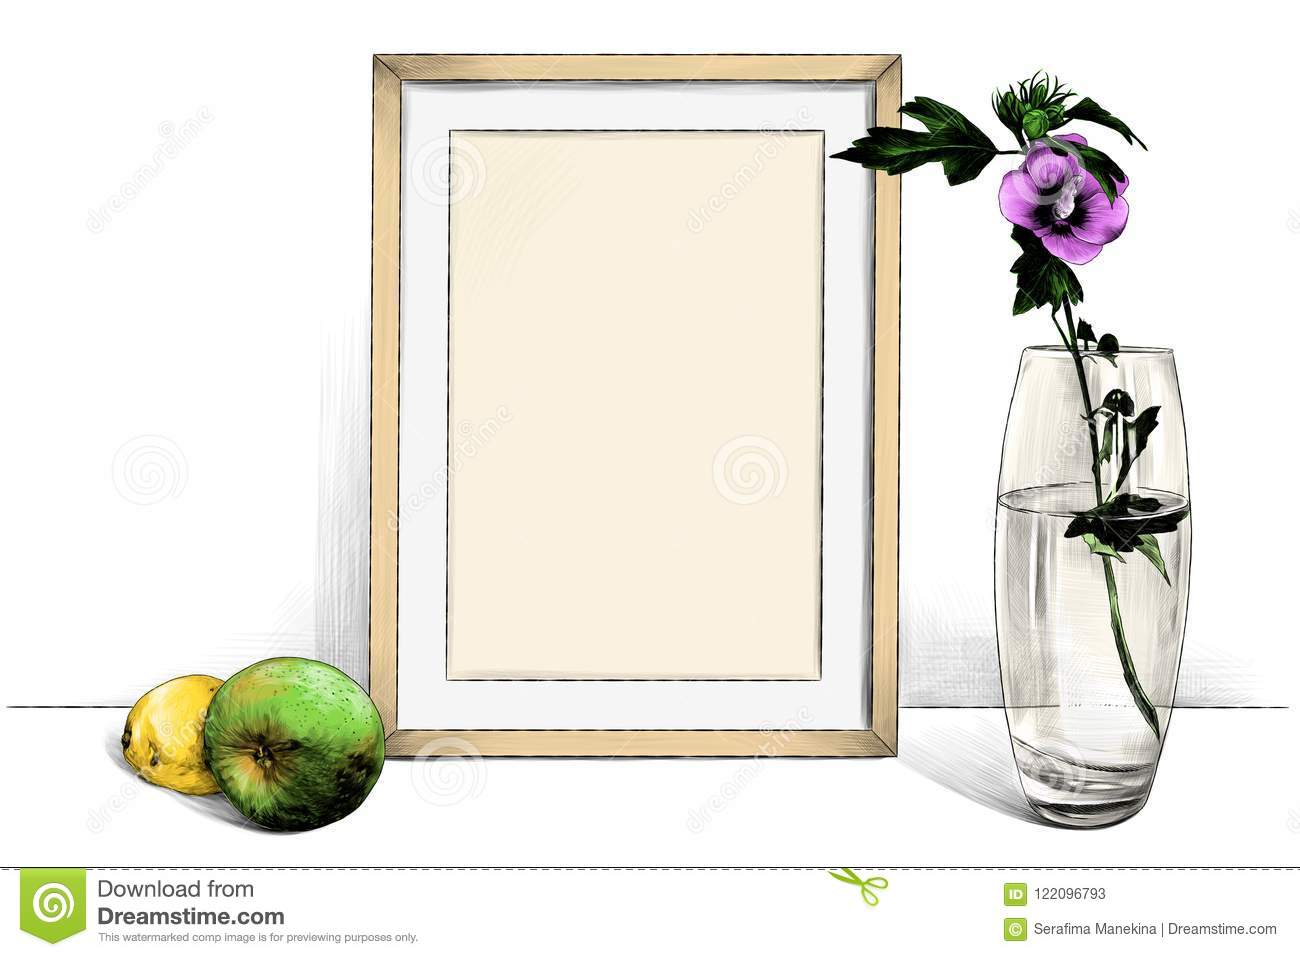 Template Picture In Frame Standing On The Table Next To A Glass Vase ...